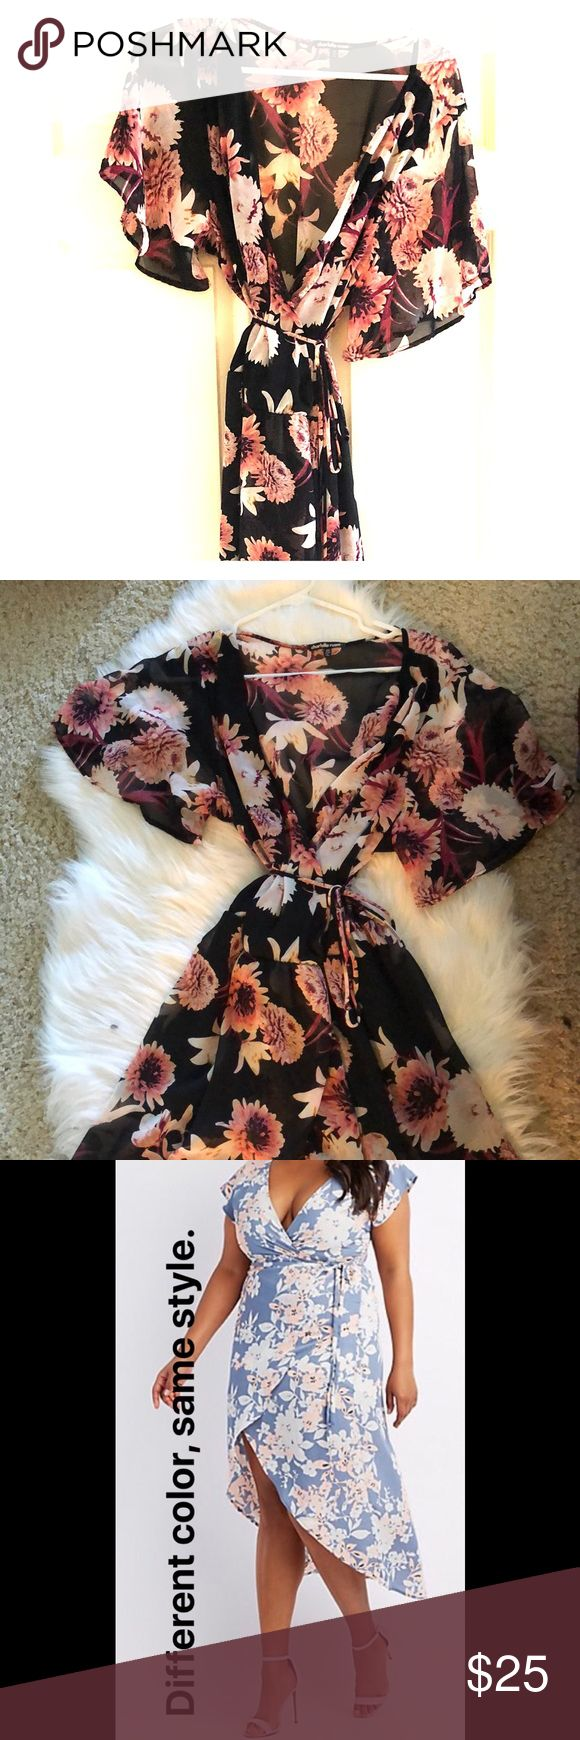 Charlotte Ruse Floral Wrap Maxi Dress This dress has only been worn once! Almost new. Great beach, summer, or vacation dress. High-low cut is very flattering. Looks cute with wedges or fancy sandals. Photo from retailer website shows a different pattern in the same style. Charlotte Russe Dresses High Low